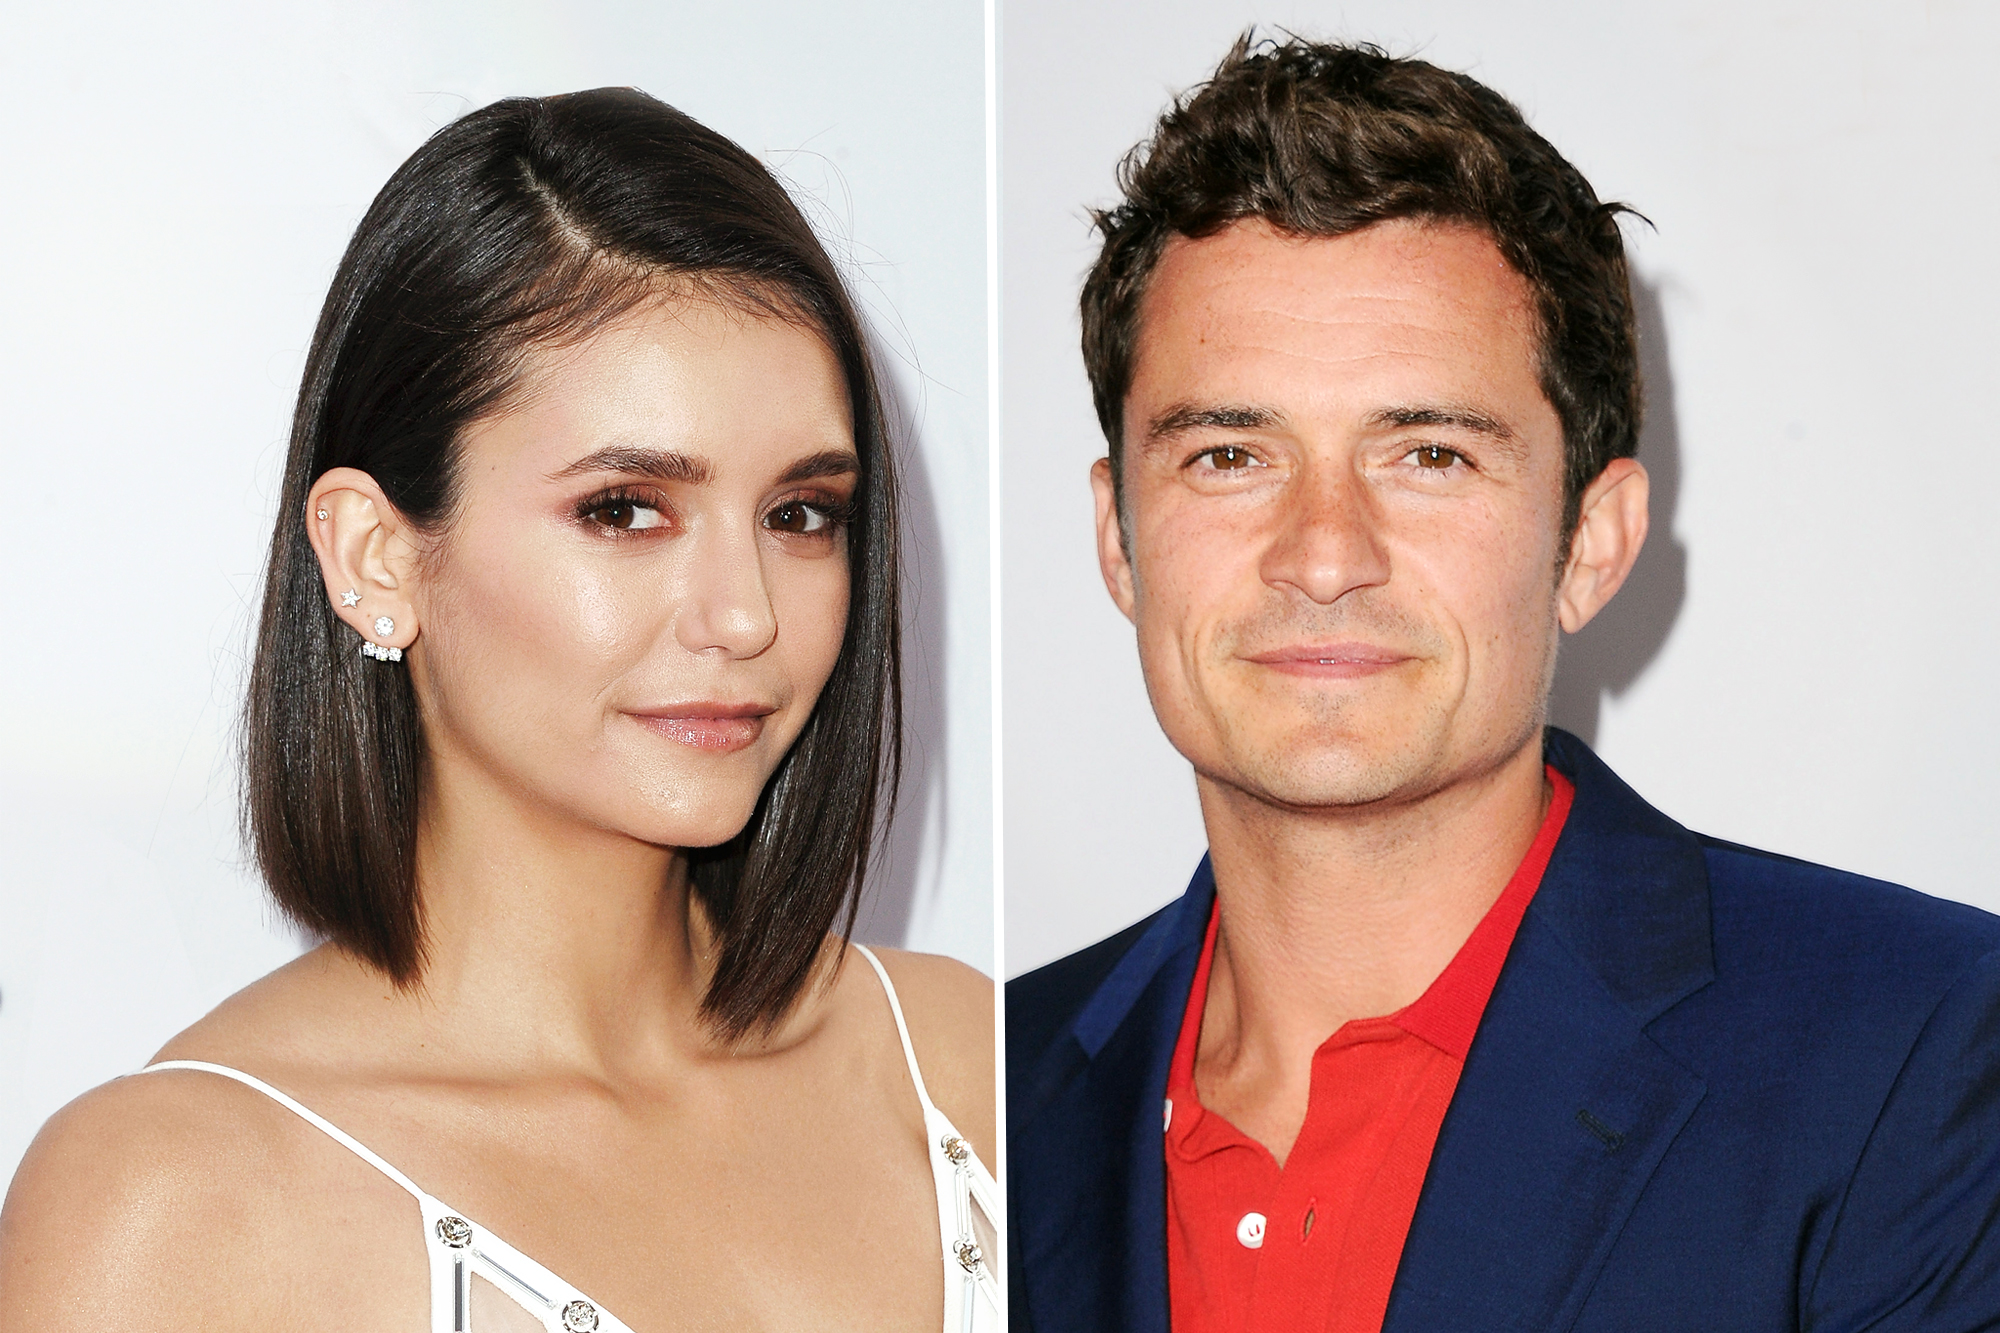 """Nina Dobrev and Orlando Bloom Are Hanging Out Romantically but It's """"Super Casual,"""" Says Source"""